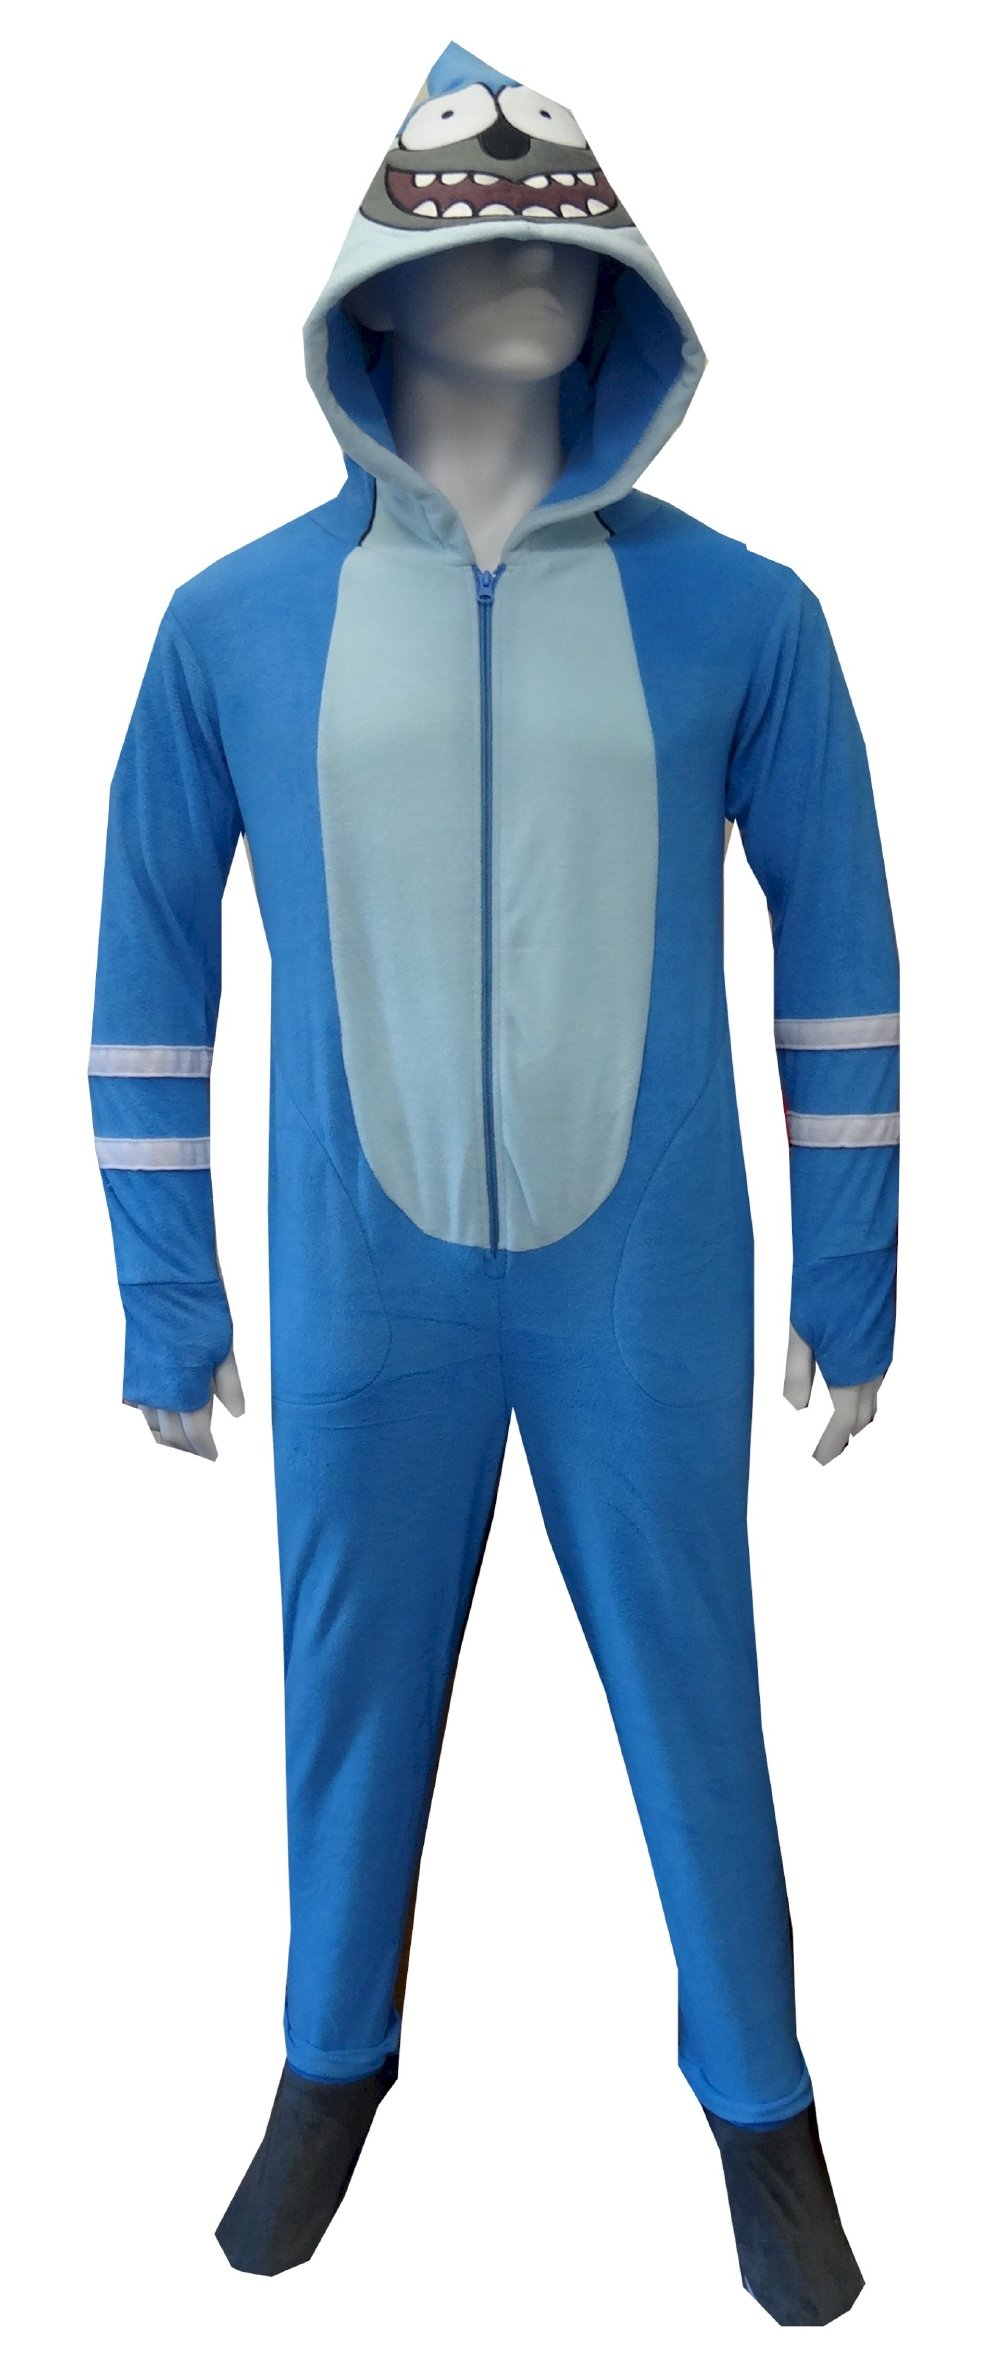 Regular Show Mordecai Unisex Adult's Hooded Onesie Footed Pajama